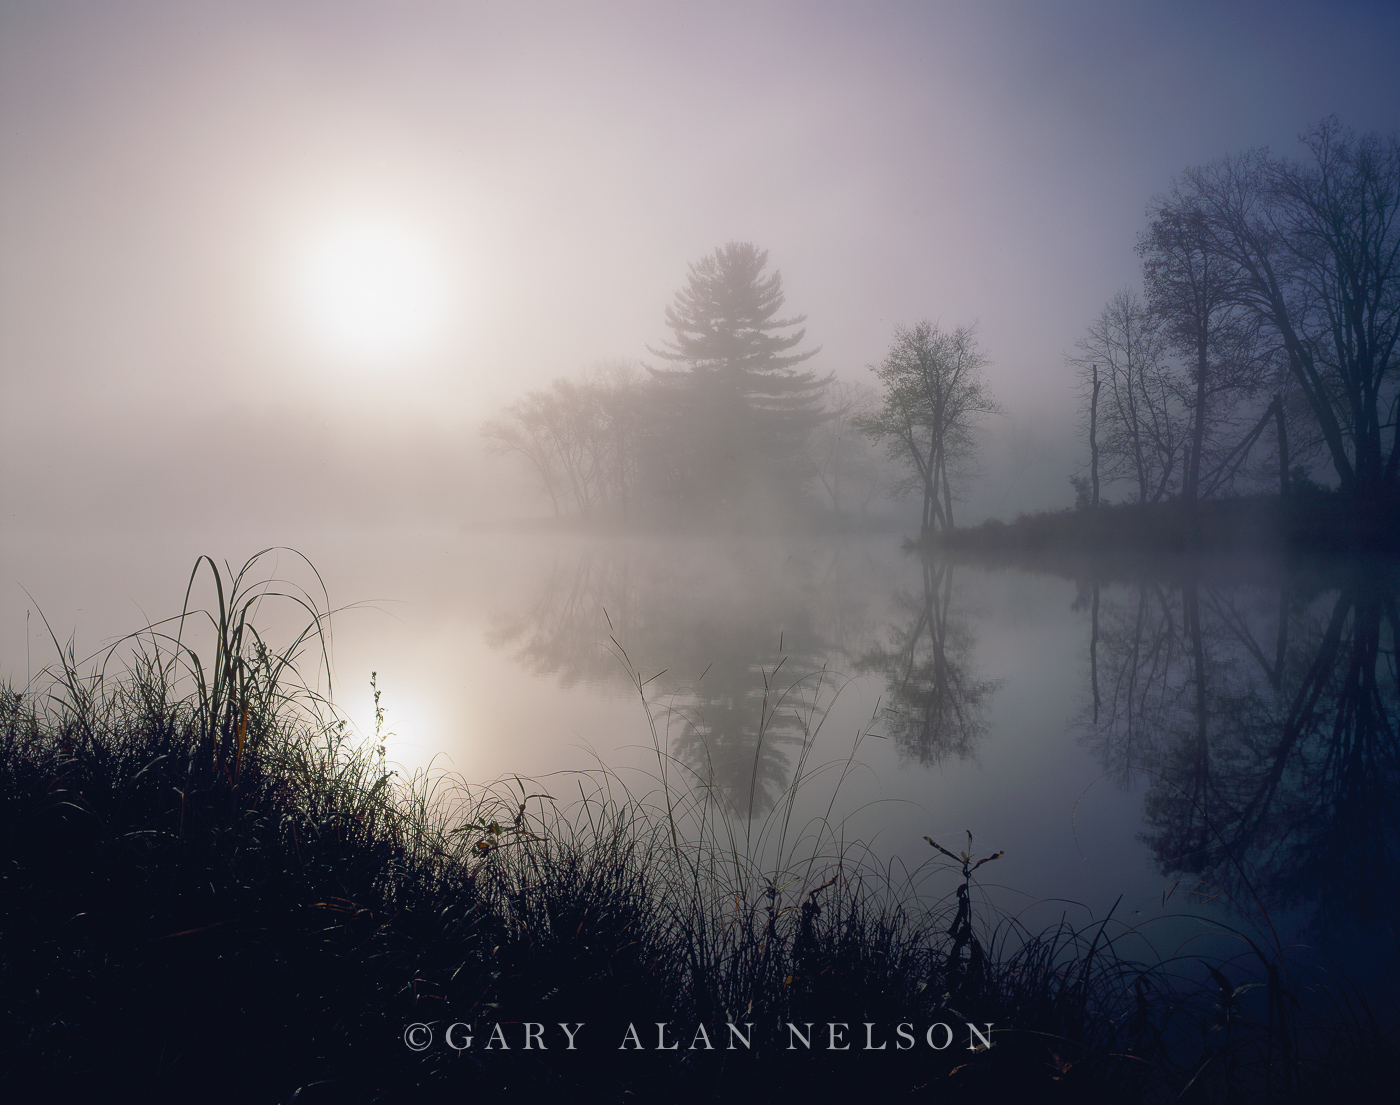 St. Croix National Scenic River, Minnesota/Wisconsin, interstate state park, fog, morning, photo